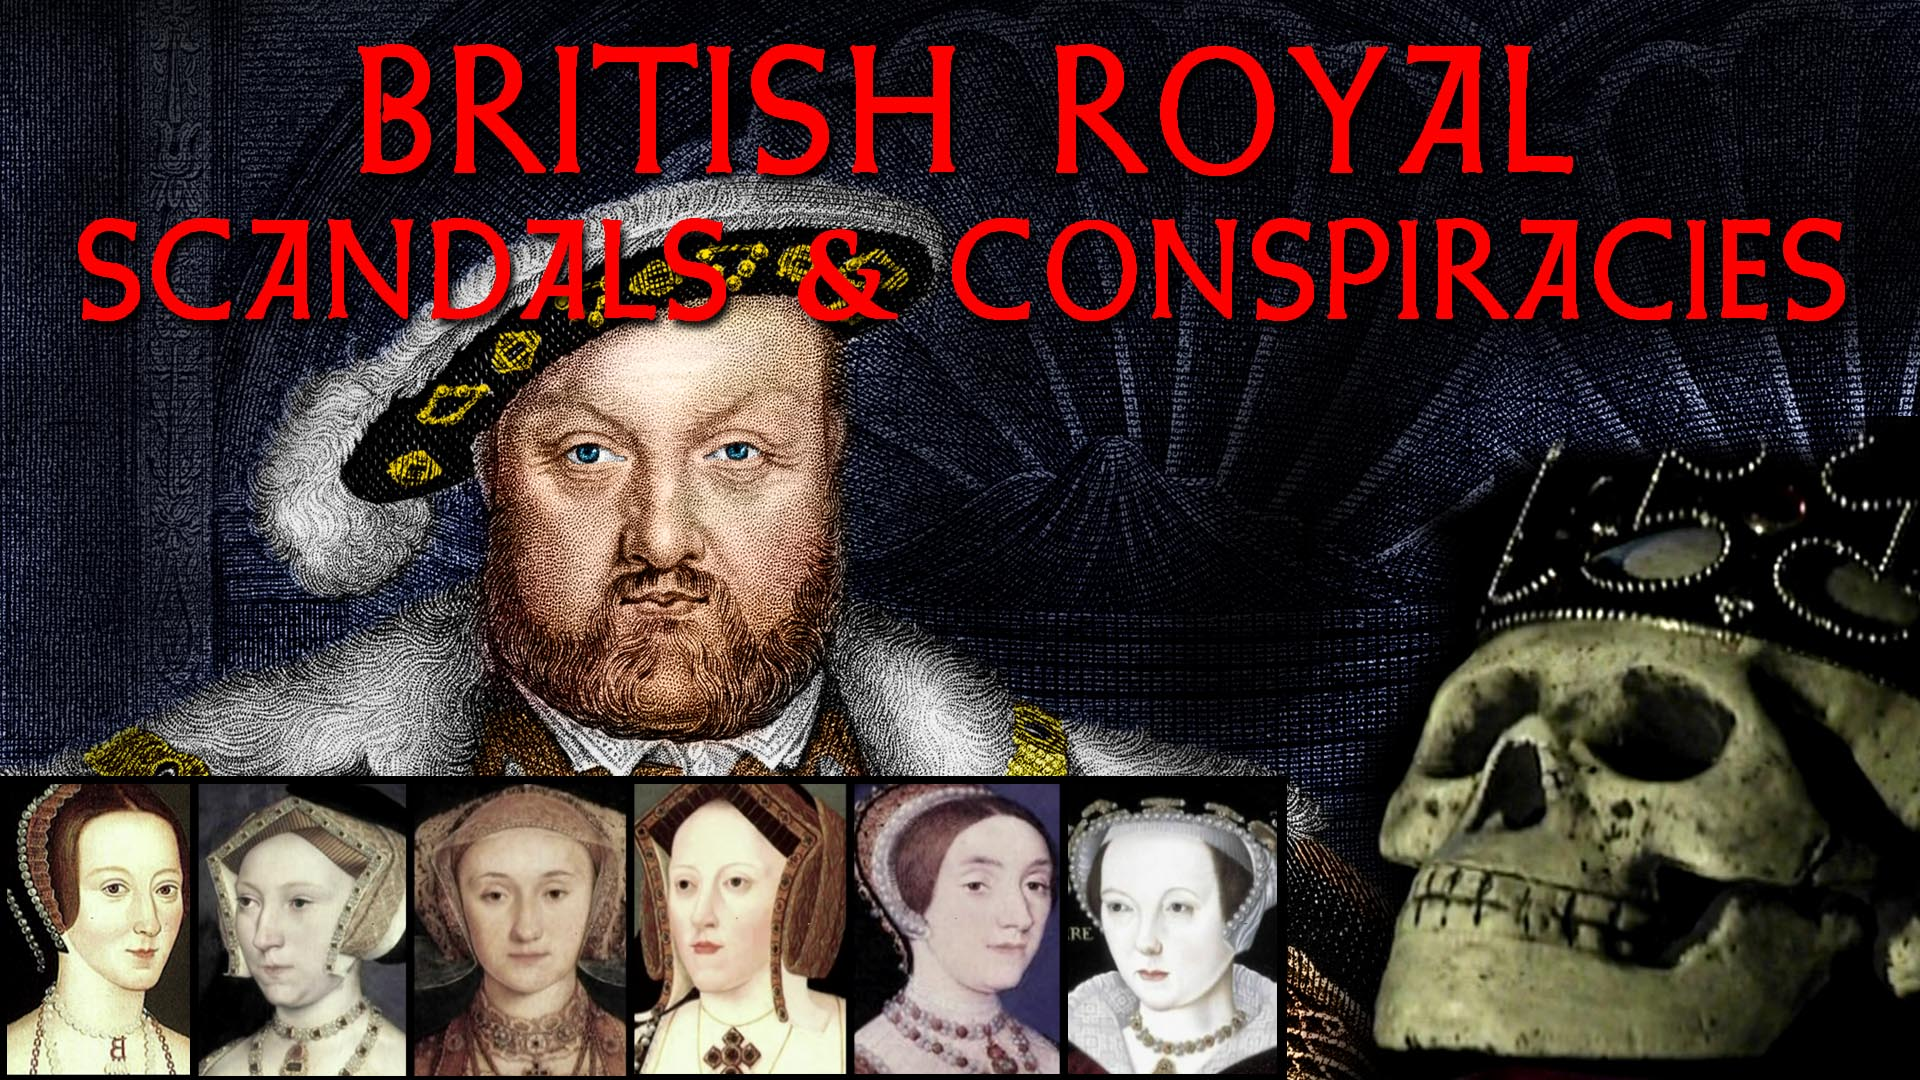 British Royal Scandals and Conspiracies